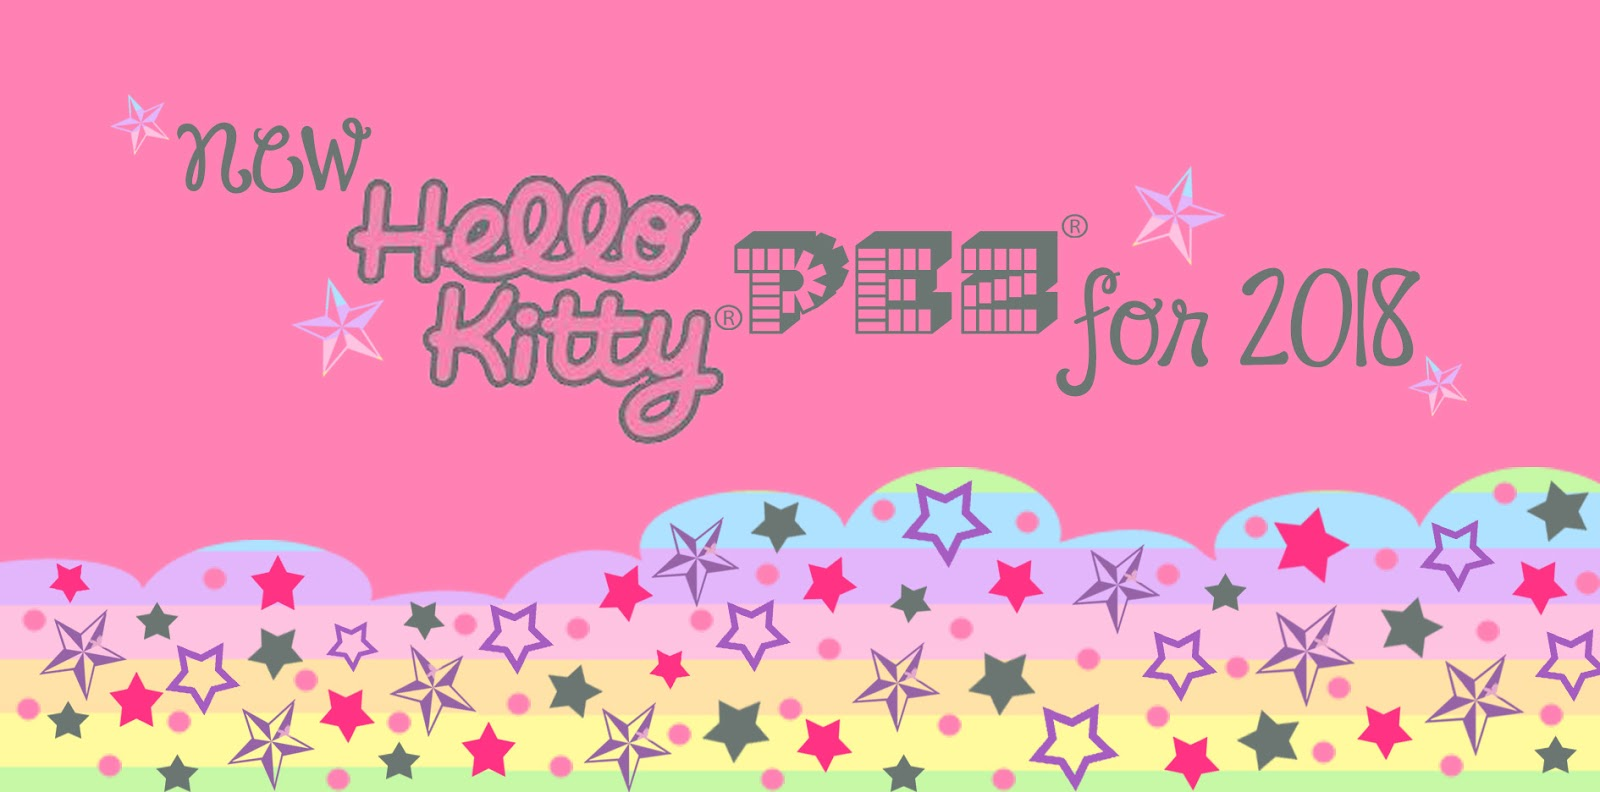 Pez Palz Friends of PEZ New Hello Kitty PEZ Line up for 2018 with